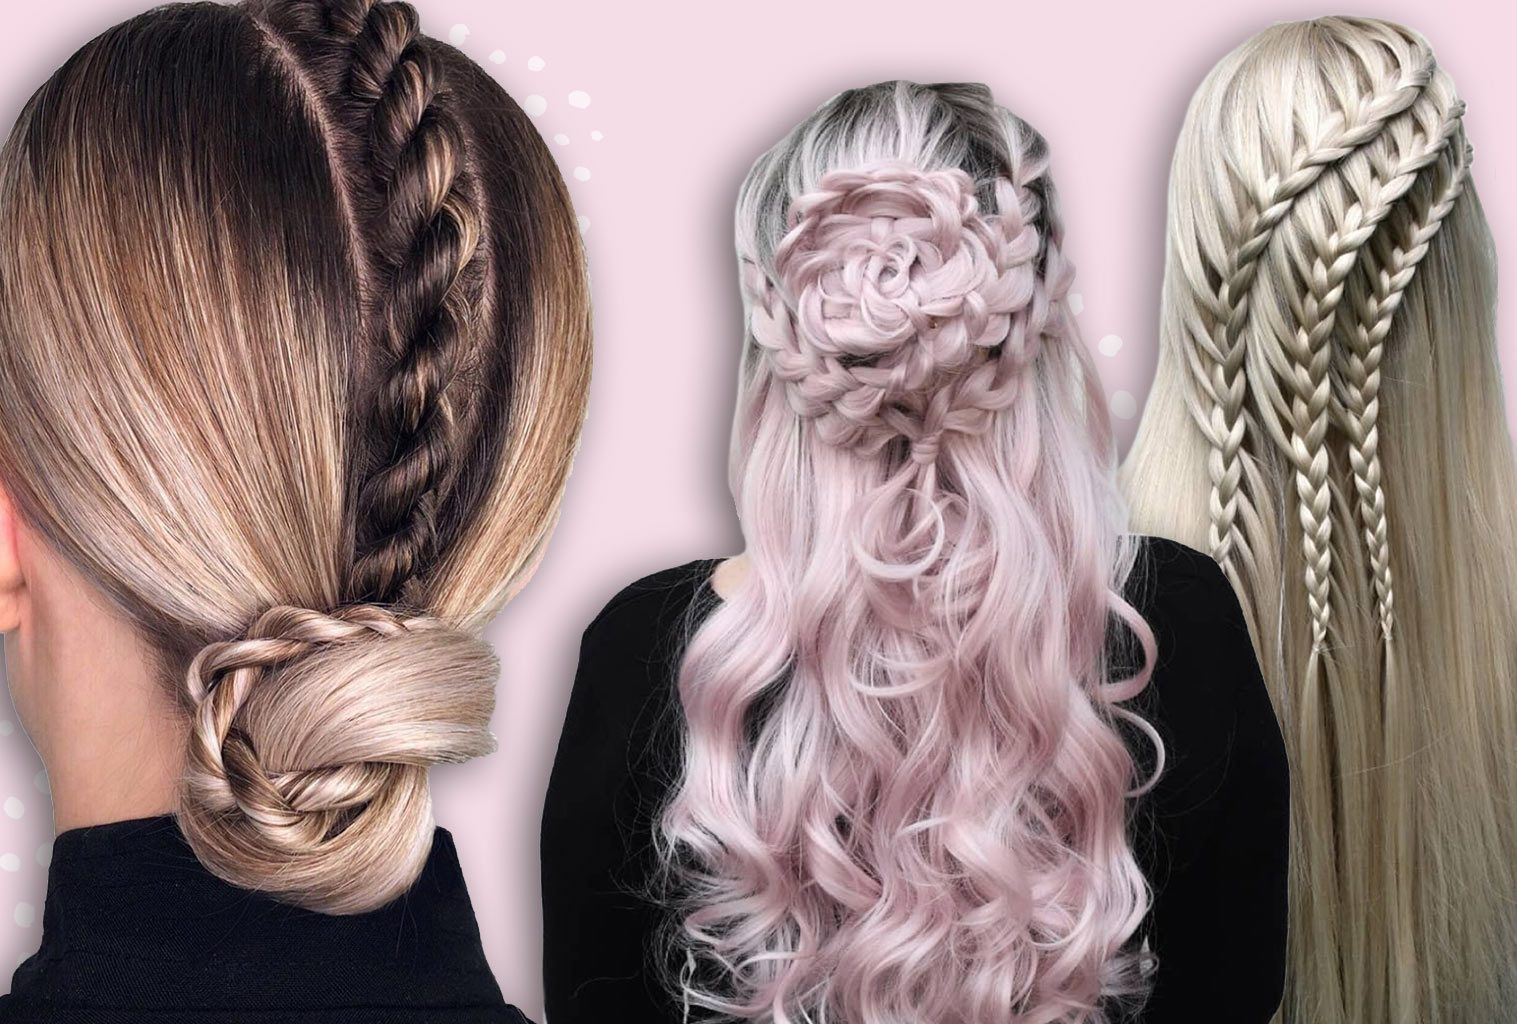 braided hair braids braided haristyle trend